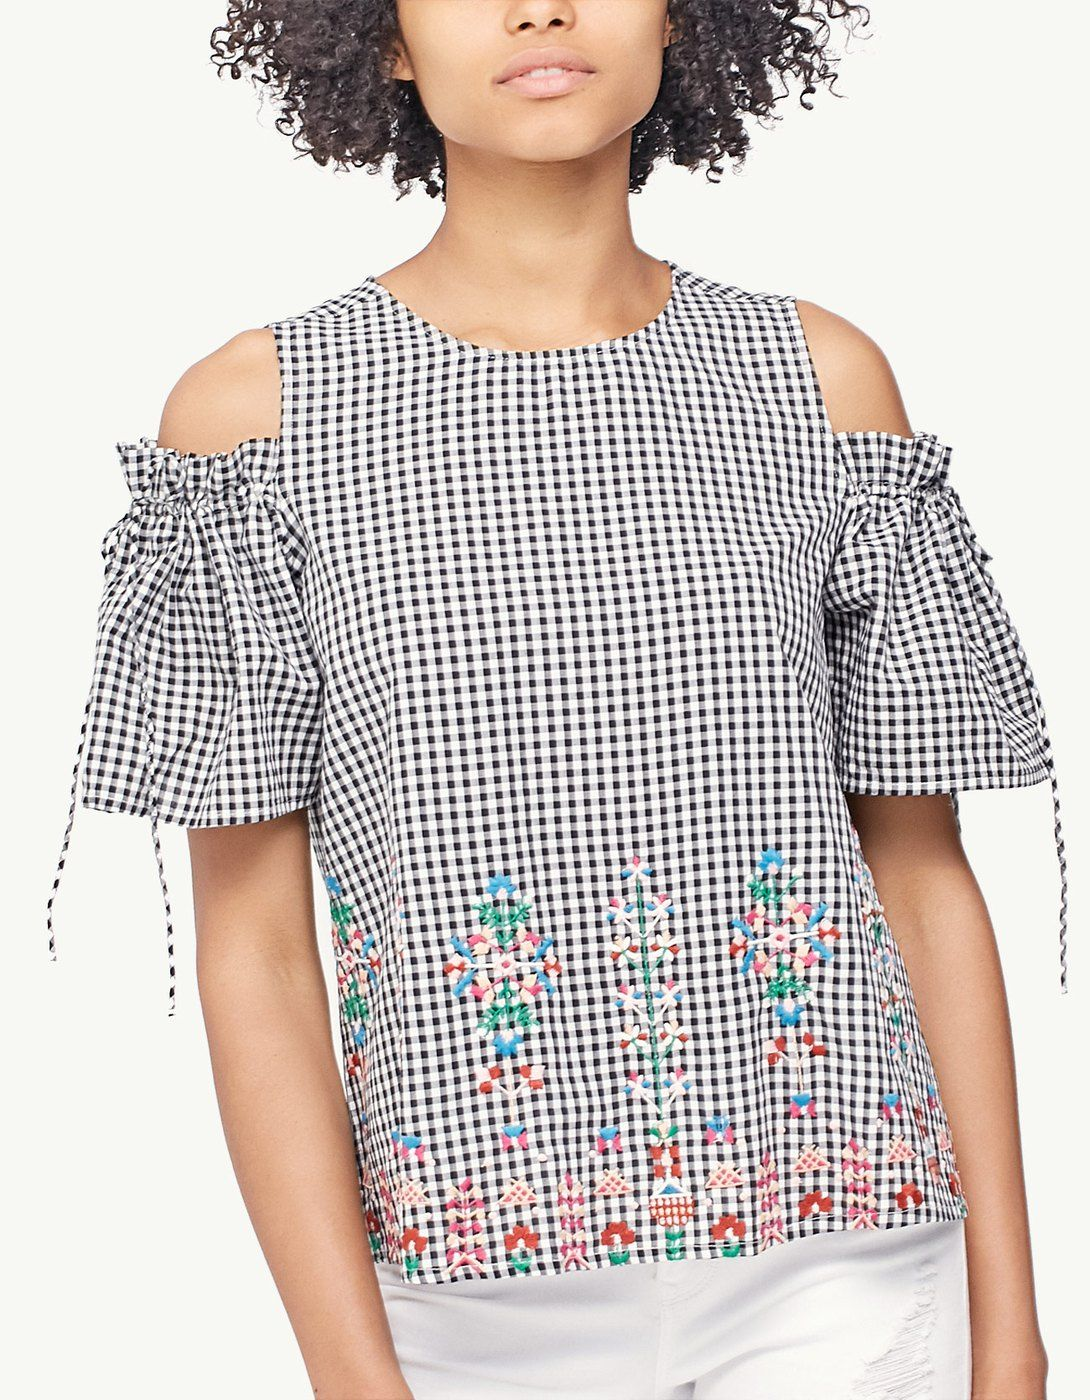 Embroidered top with cut-out shoulders - Tops   Stradivarius Other Countries